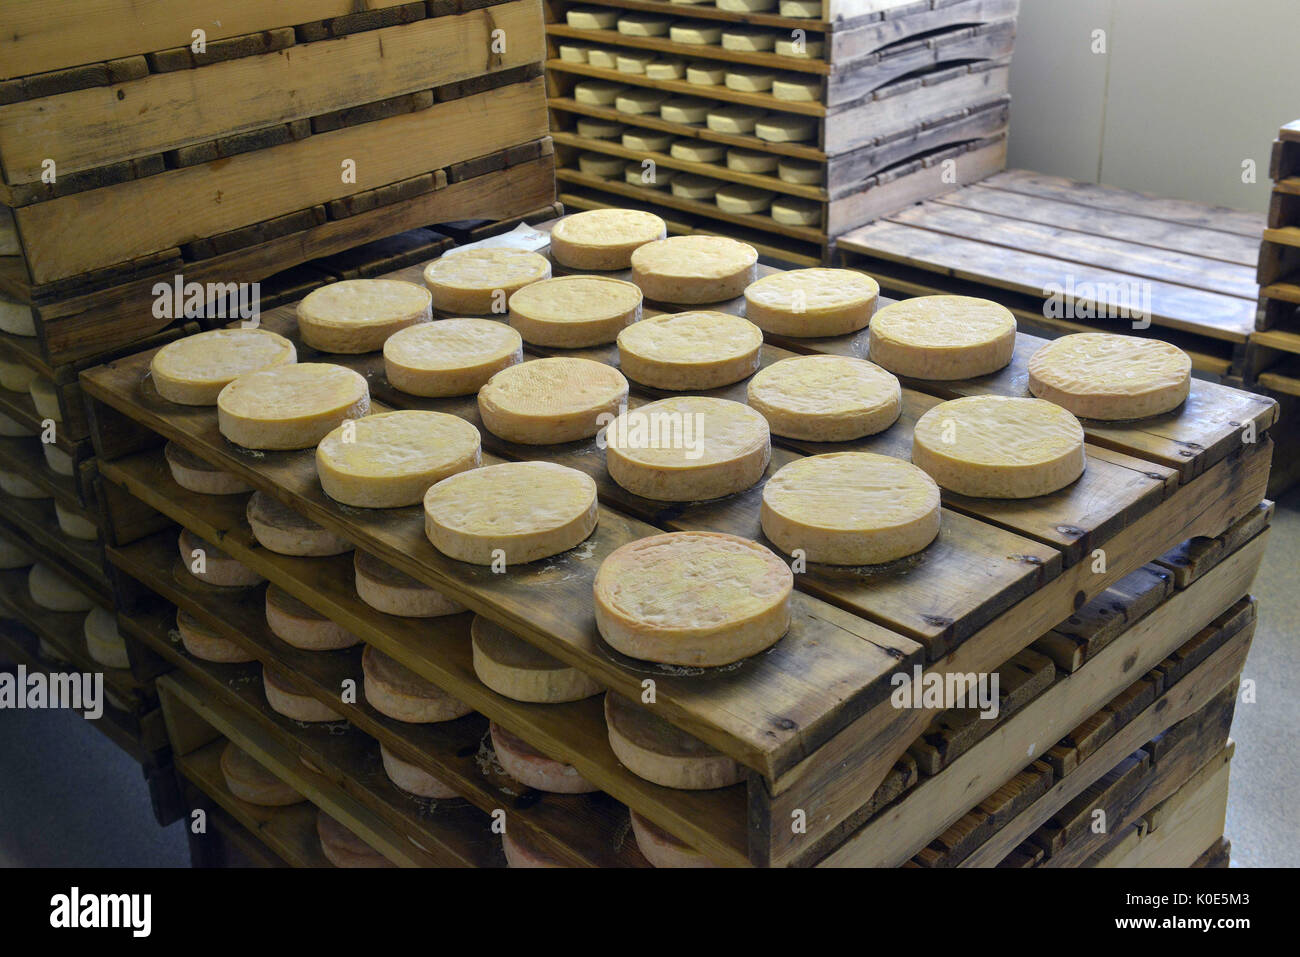 2014/02/02. Munster cheese maturing cellar, AOC (with a guarantee of origin) soft cheese made mainly from milk from the Vosges, in the Haut-Rhin - Stock Image